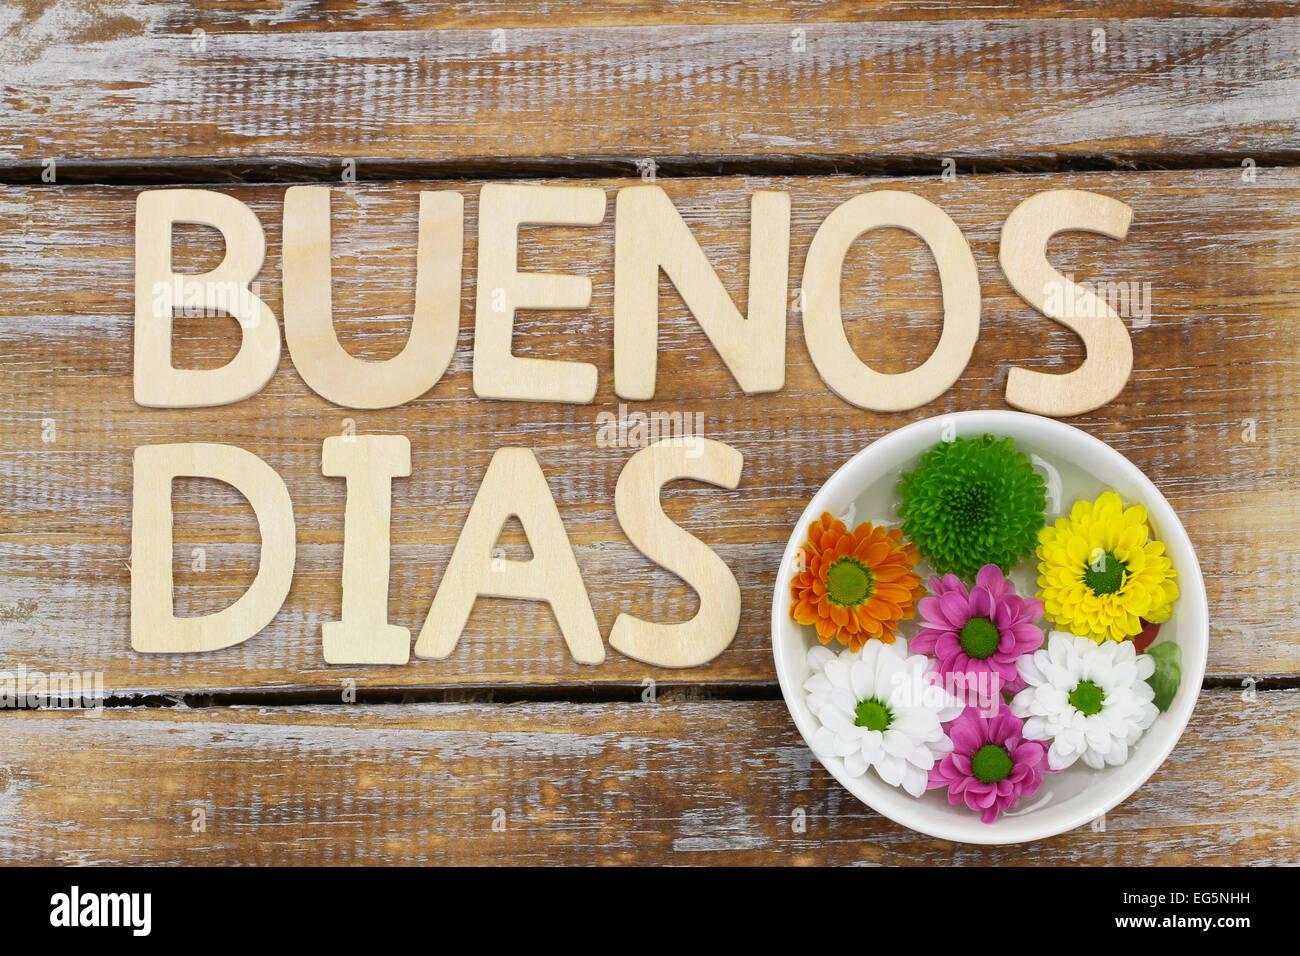 Buenos Dias Good Morning In Spanish Written With Wooden Letters And Santini Flowers